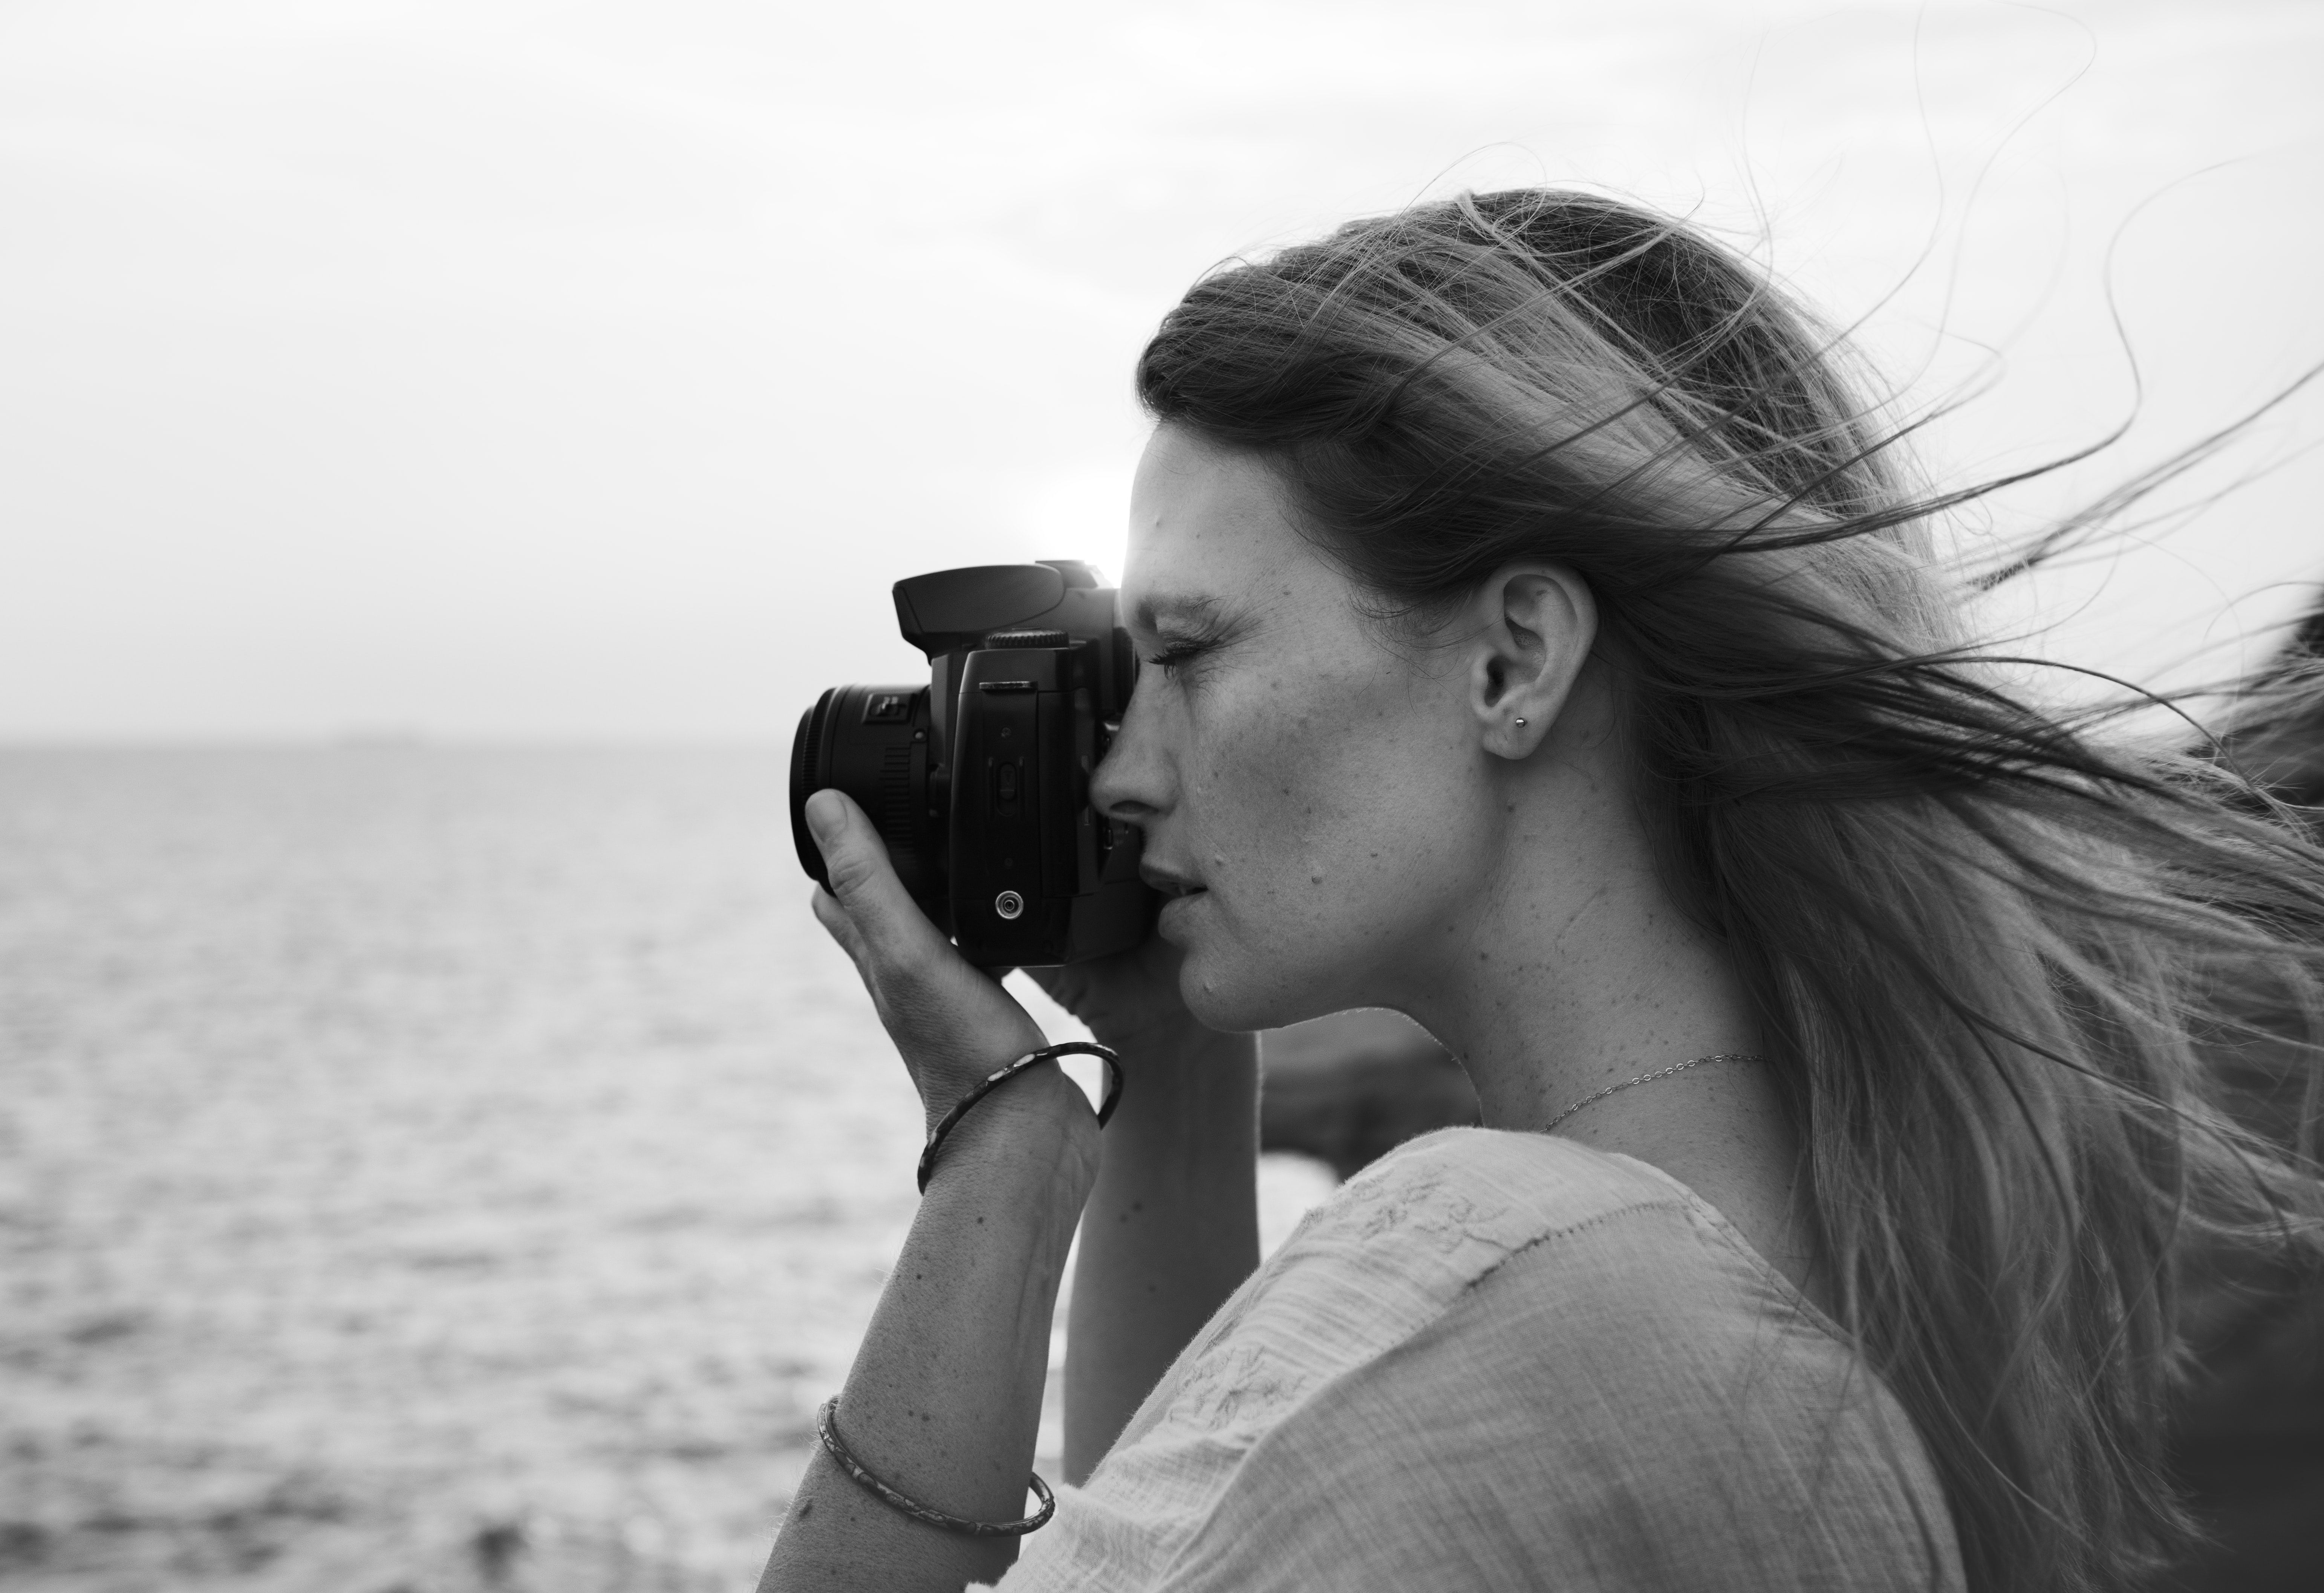 grayscale photo of woman taking photo using black DSLR camera